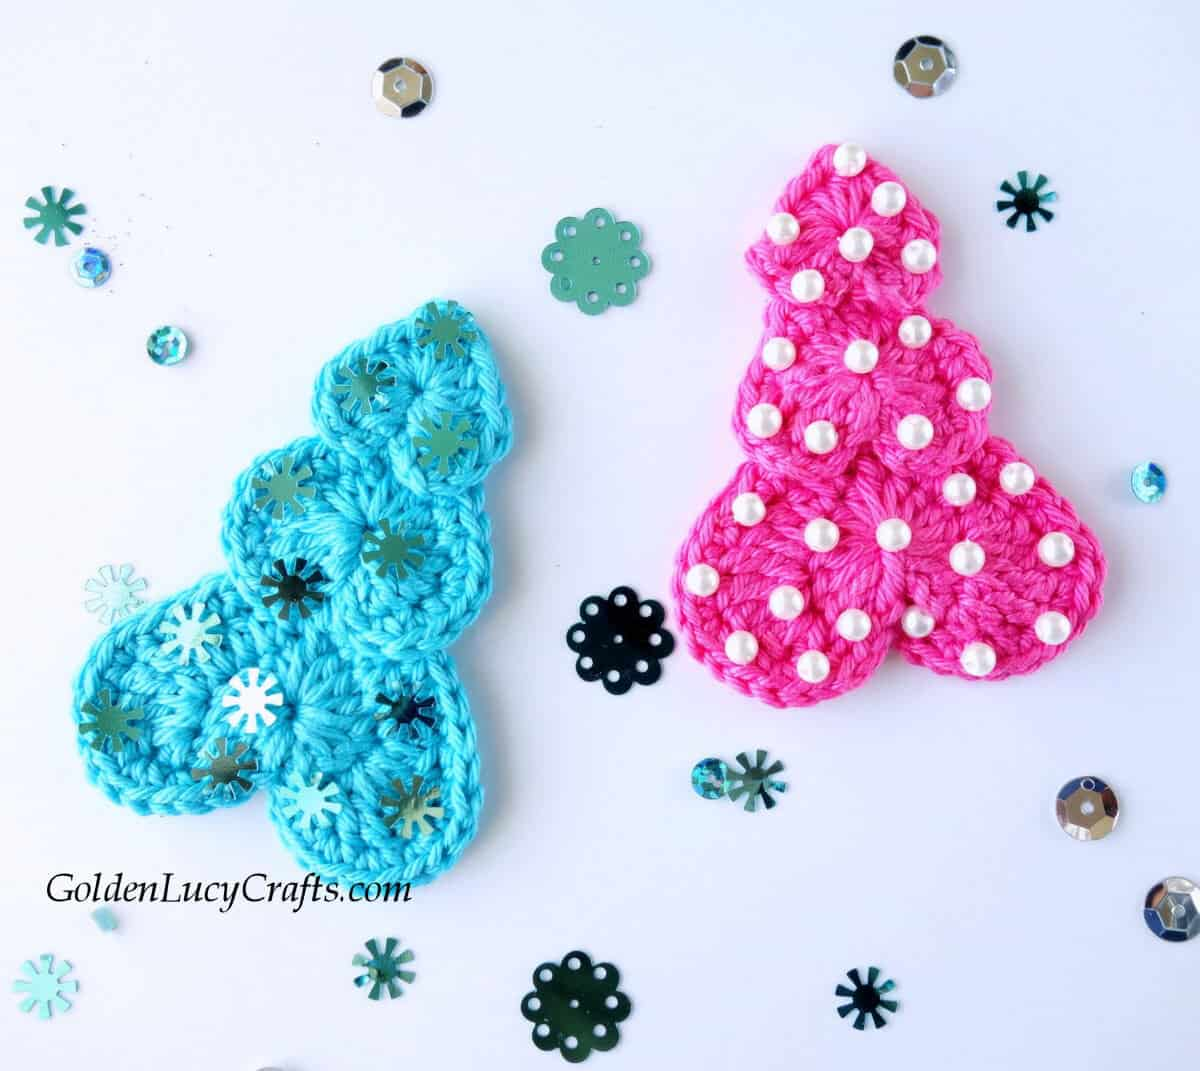 Two crocheted Christmas trees in pink and turquoise colors.